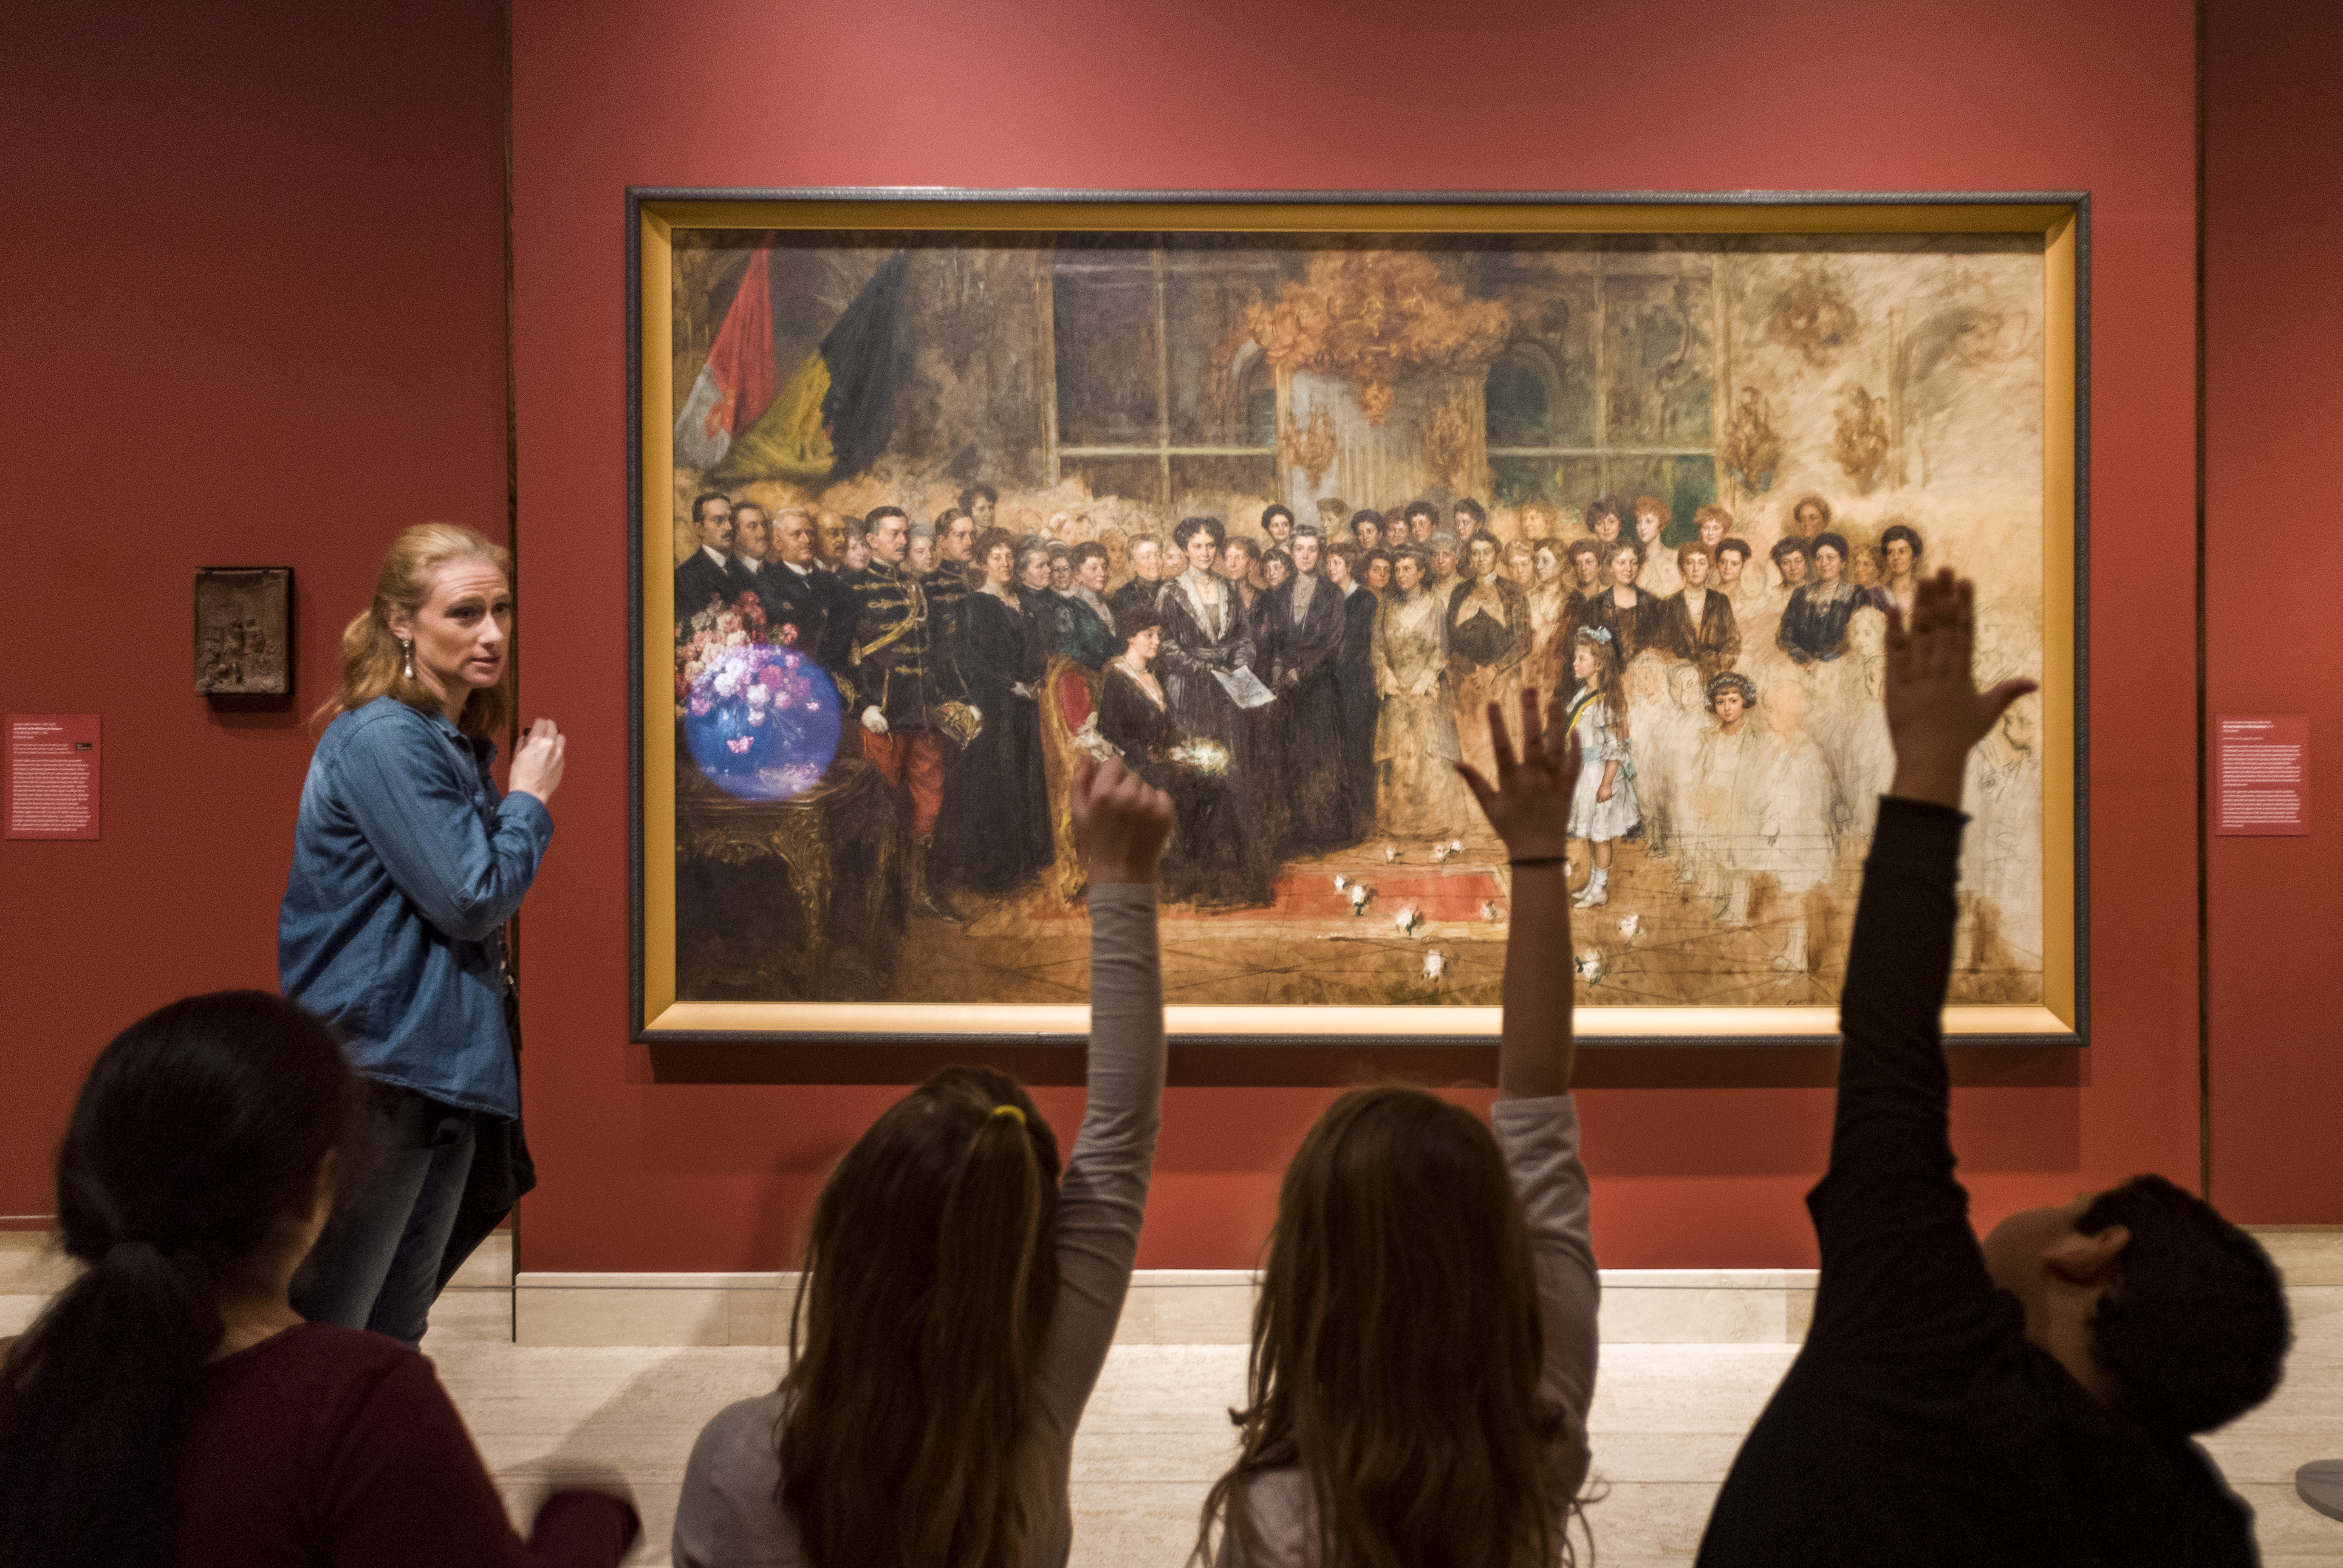 Figure 1. At the galleries of the University of Oregon Jordan Schnitzer Museum of Art, a teacher uses the Visual Teaching Strategies method with students to think critically aboutThe Last Audience of the Hapsburgs, a 1918 oil painting by Hungarian artist Artur von Ferraris.